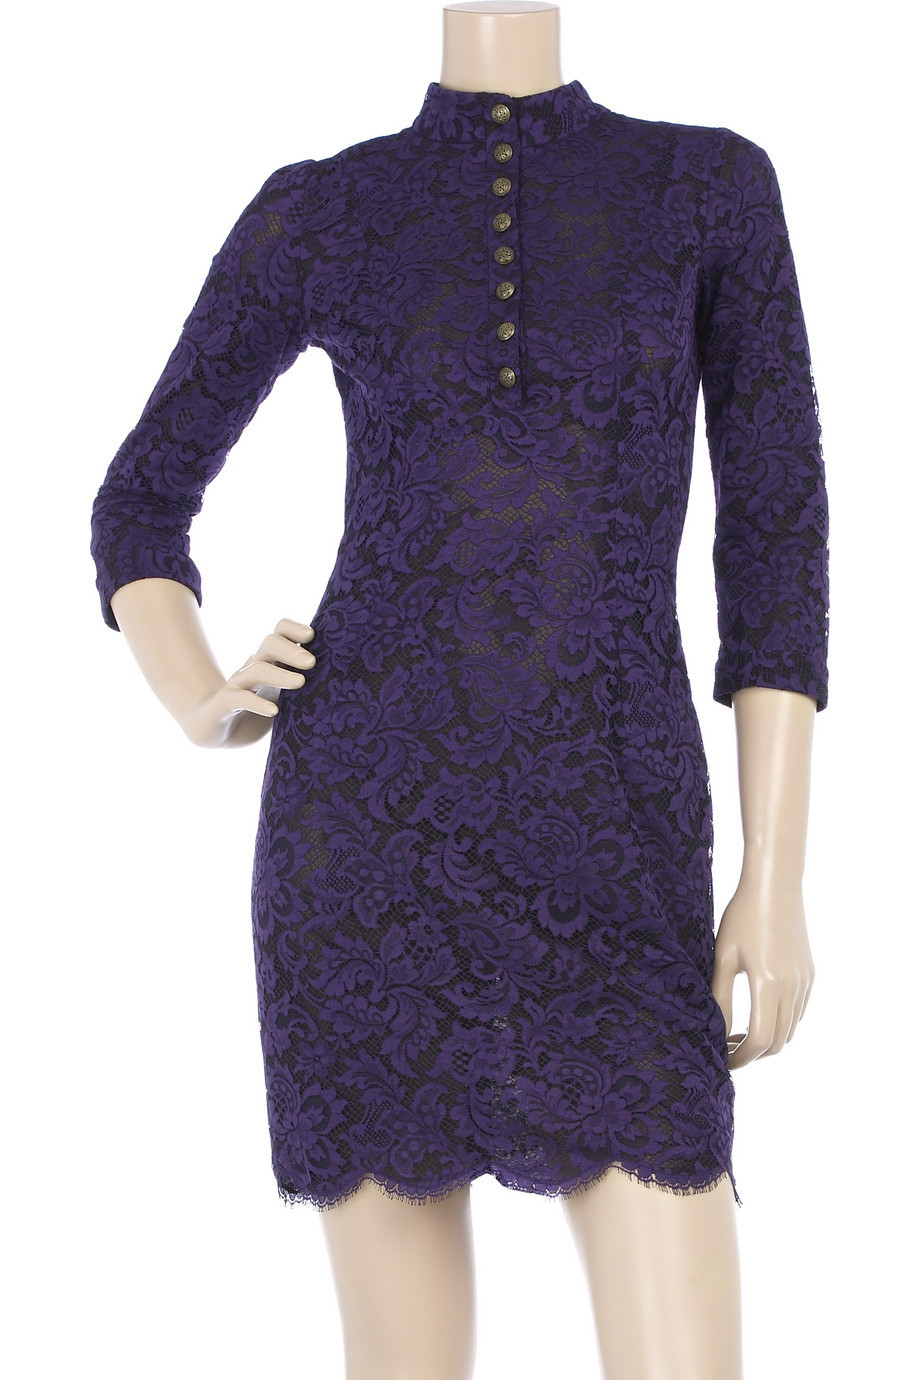 L'Wren Scott Layered lace dress | NET-A-PORTER.COM from net-a-porter.com